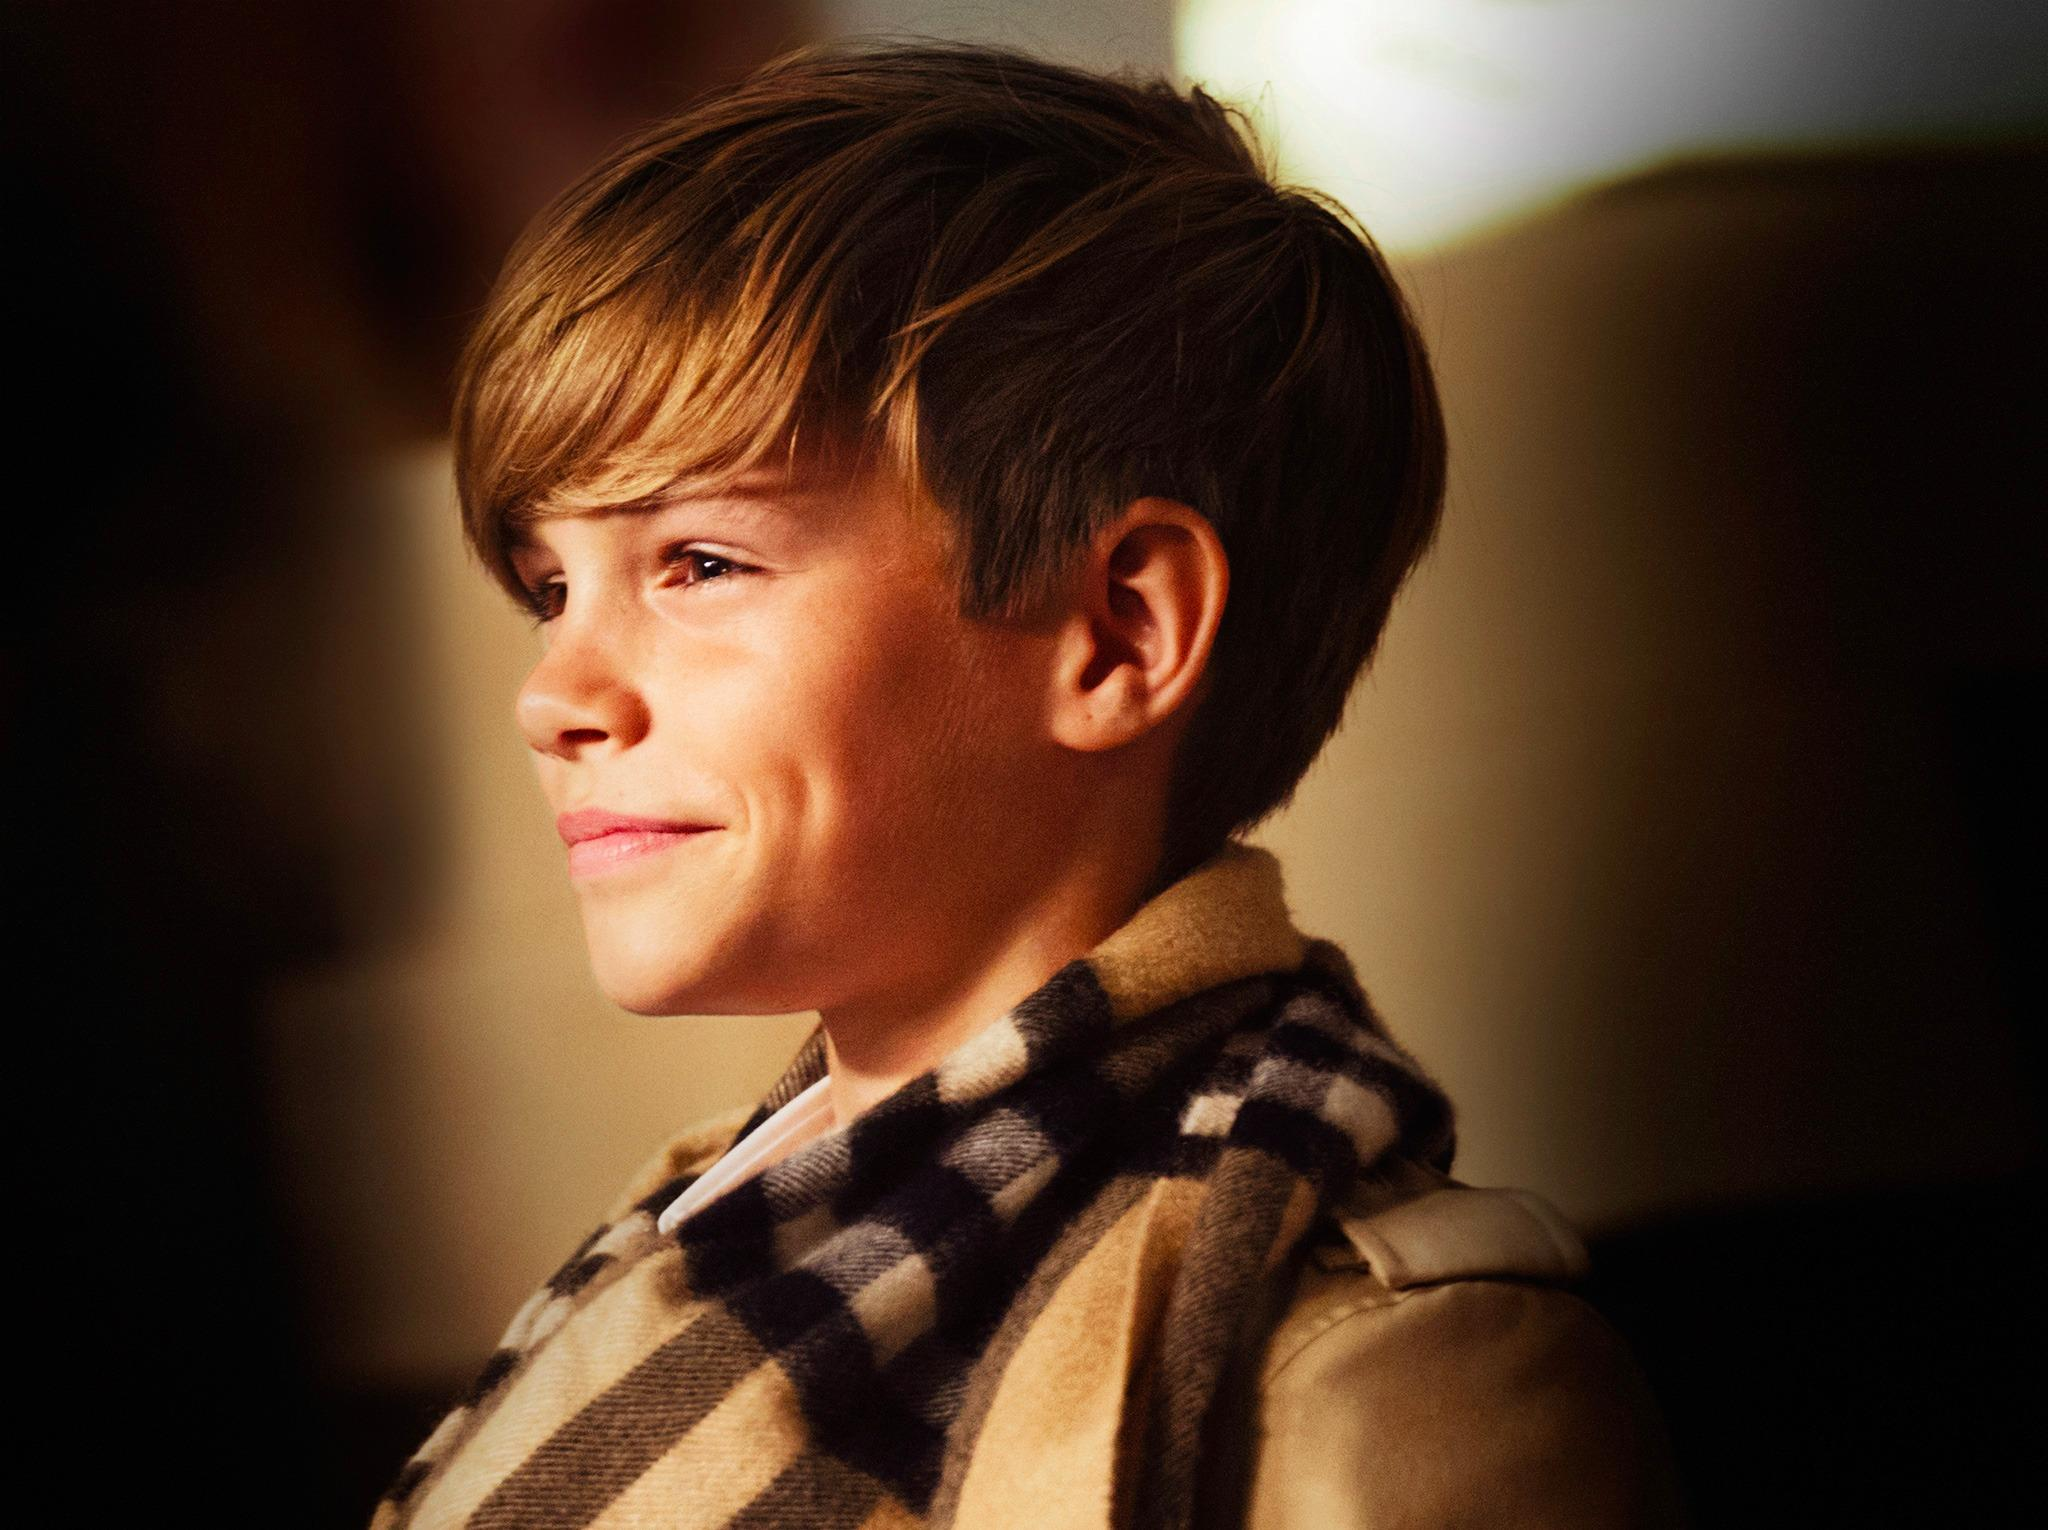 Romeo Beckham, behind the scenes at the @Burberry Festive campaign. Coming November 2014. http://t.co/Io4ViAjAOA